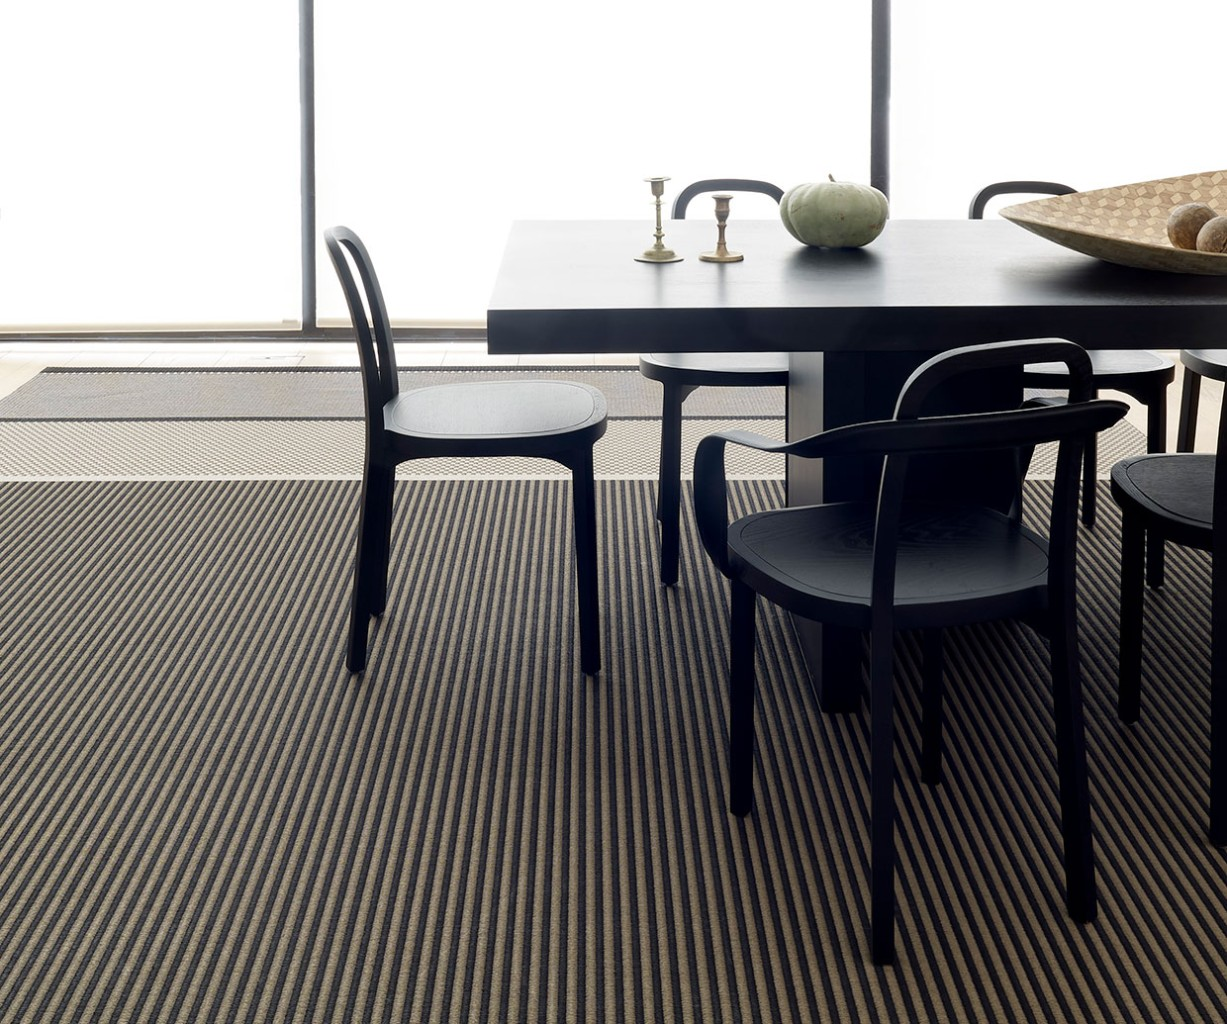 4419-Siro-Chair_stained-black_San-Francisco1433215_col-nutria-stone_interior-3_woodnotesM6NBqpDRFSW82